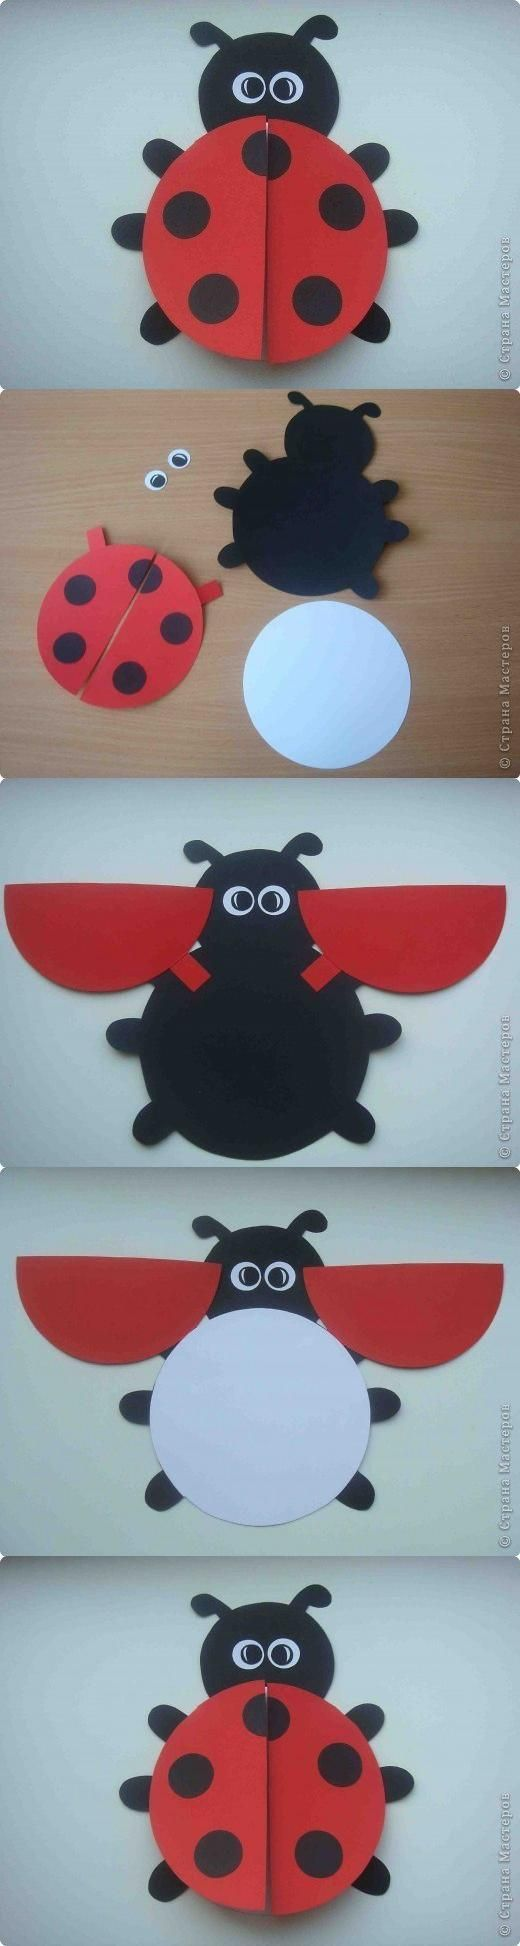 DIY Ladybug Postcard DIY Projects | UsefulDIY.com Follow Us on Facebook == http://www.facebook.com/UsefulDiy